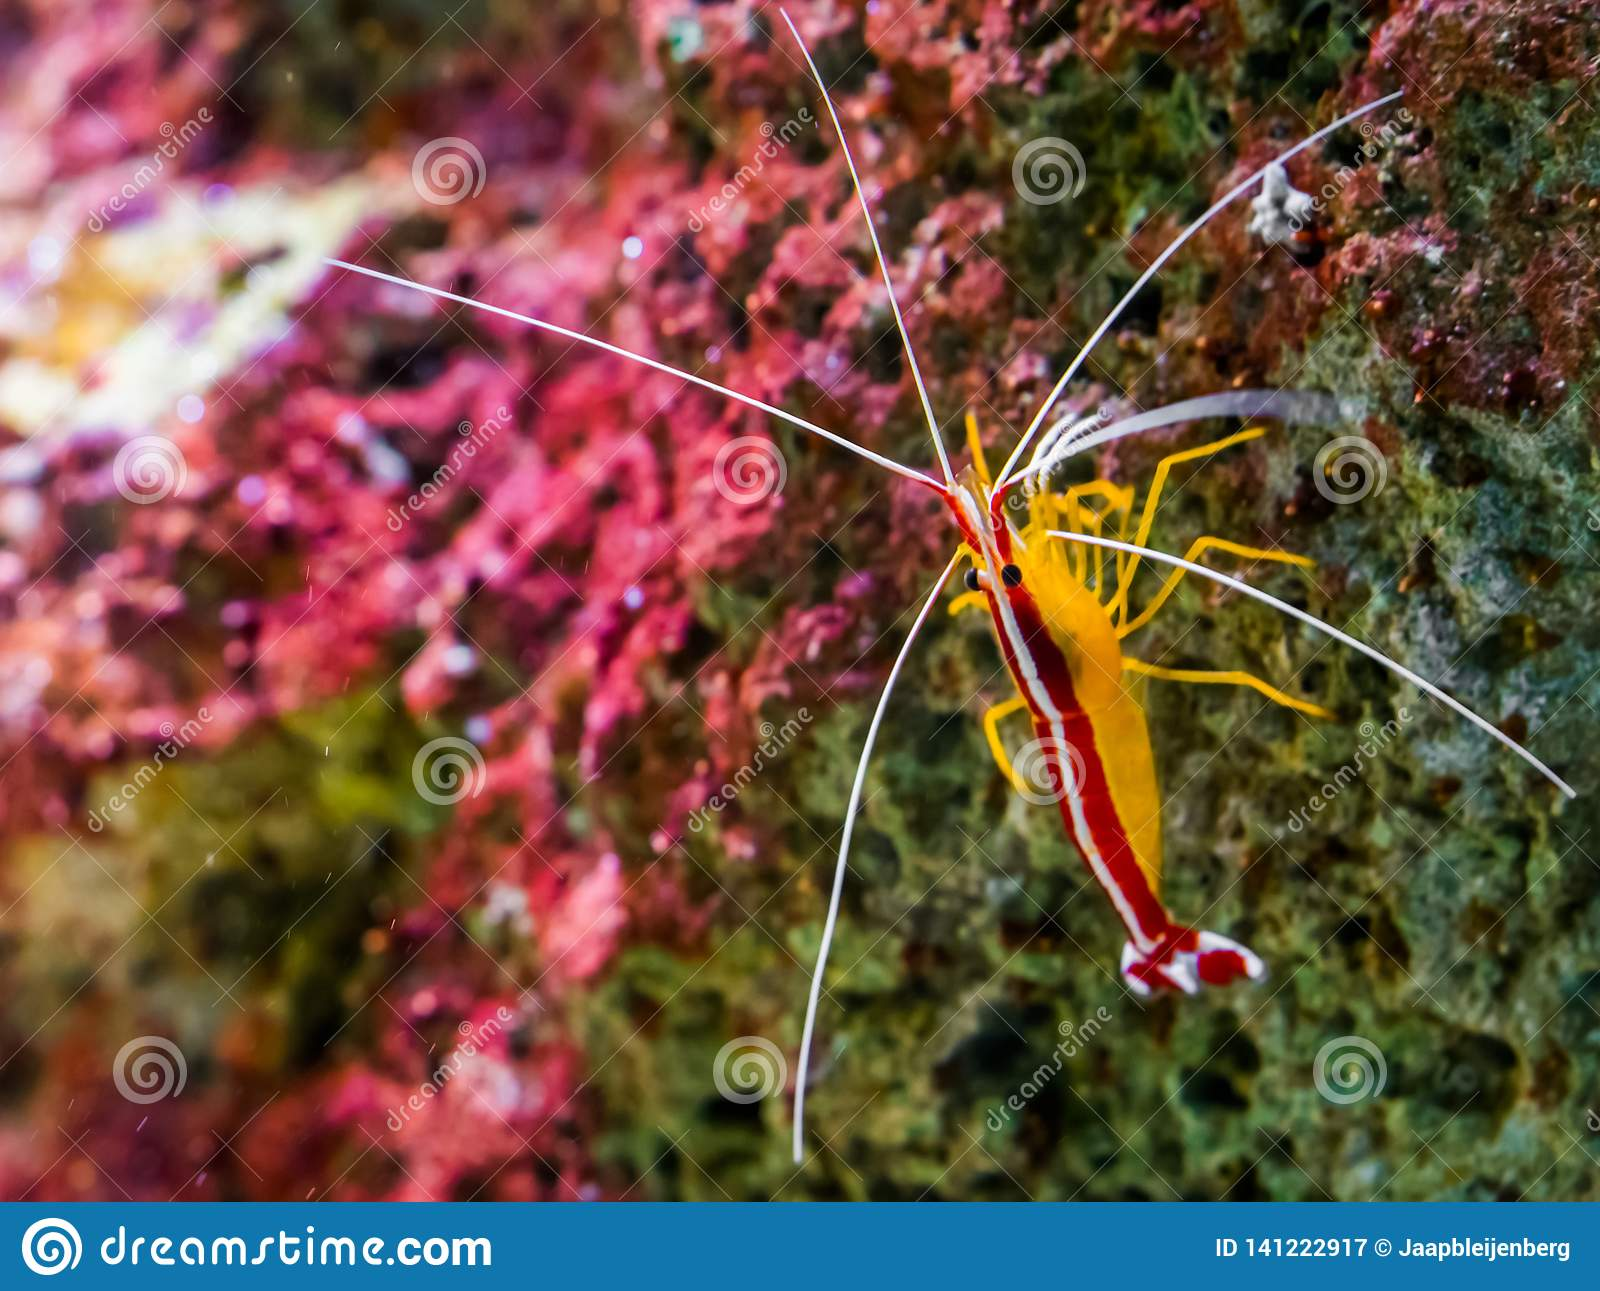 Portrait of a atlantic cleaner shrimp sitting on a rock, colorful prawn from the atlantic ocean